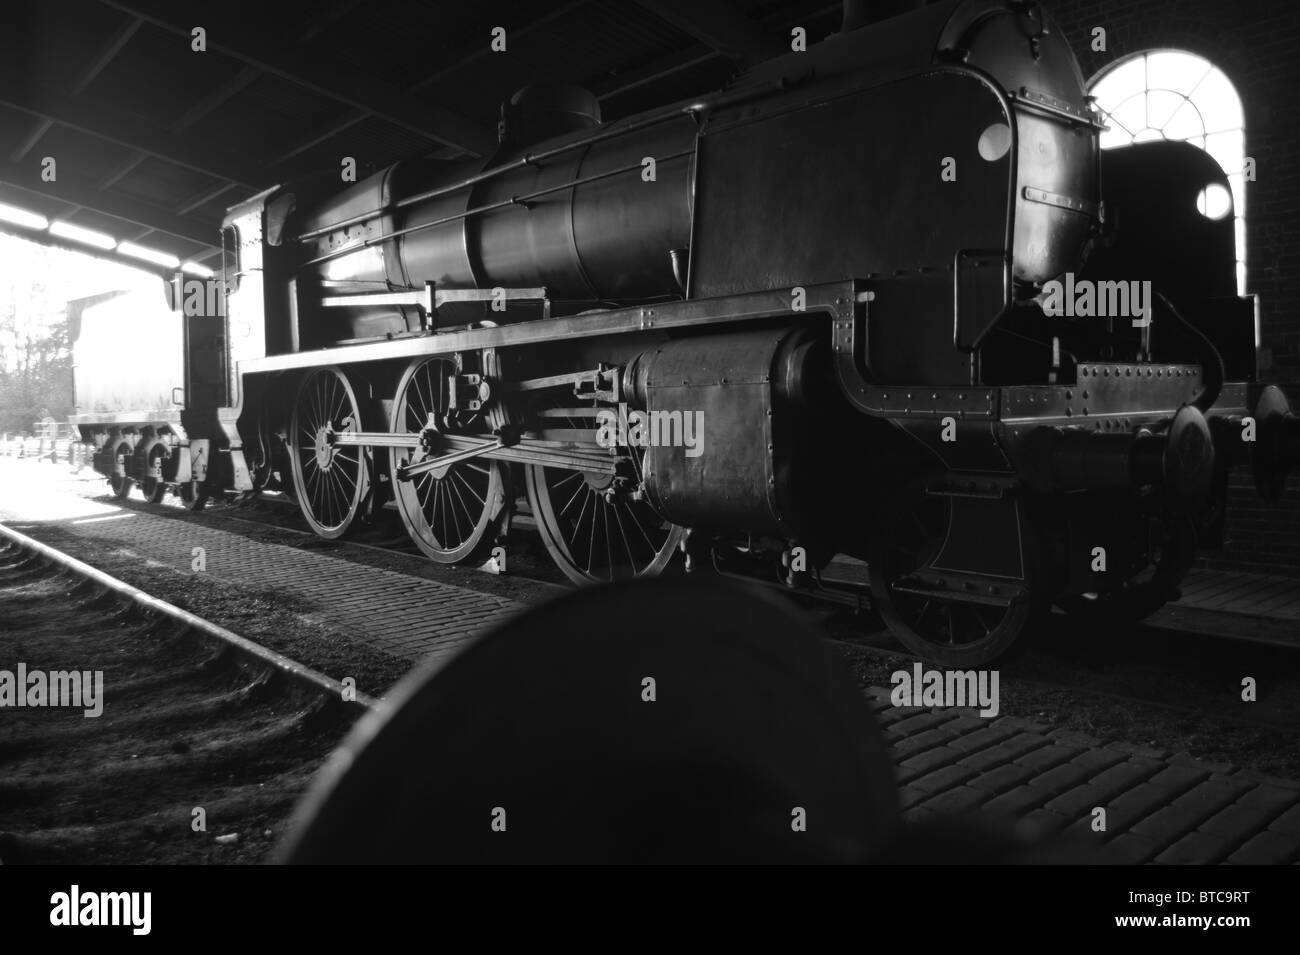 SR Maunsell U-Class Steam Locomotive, No 1618, in the engine shed at Sheffield Park, Bluebell Heritage Railway, - Stock Image